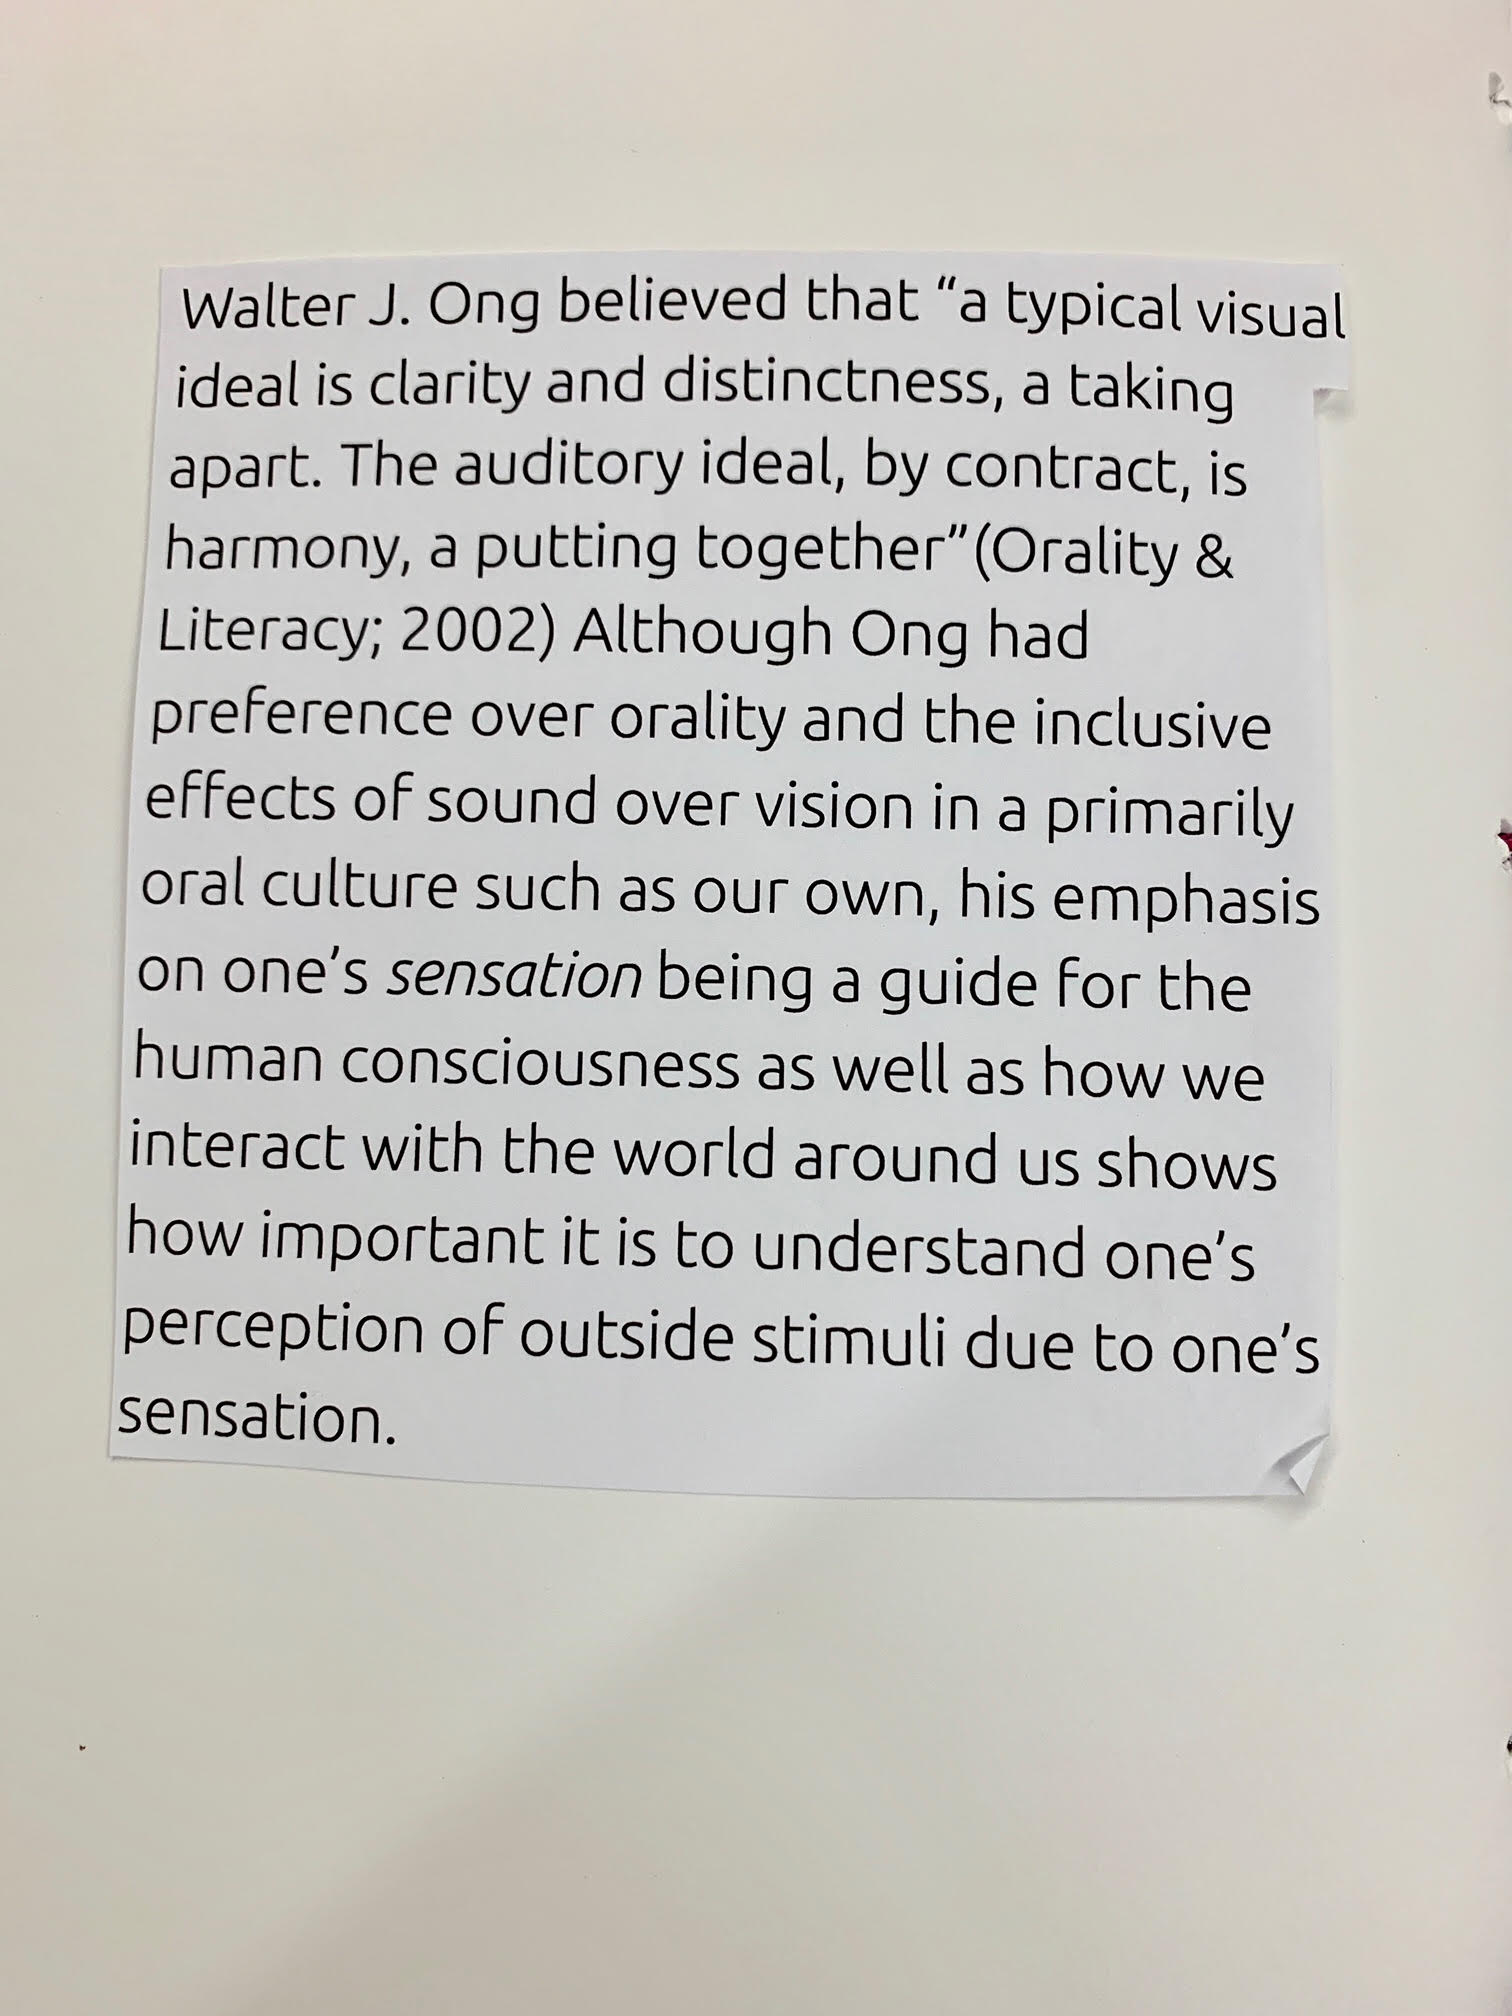 """Page 12. Caption: This page touches upon Ong's discussion of one's sensation and which he personally deemed the most critical; orality. Ong believed that """"a typical visual ideal is clarity and distinctness, a taking apart.""""(2002) Although Ong supported the inclusivity of oral culture, the prints in this chapbook are meant to remain ambiguous so as not to induce the ideal of clarity and distinctiveness. To leave it entirely up to the viewer means that there is room for one's personal outside stimuli and experiences to provide the meaning."""